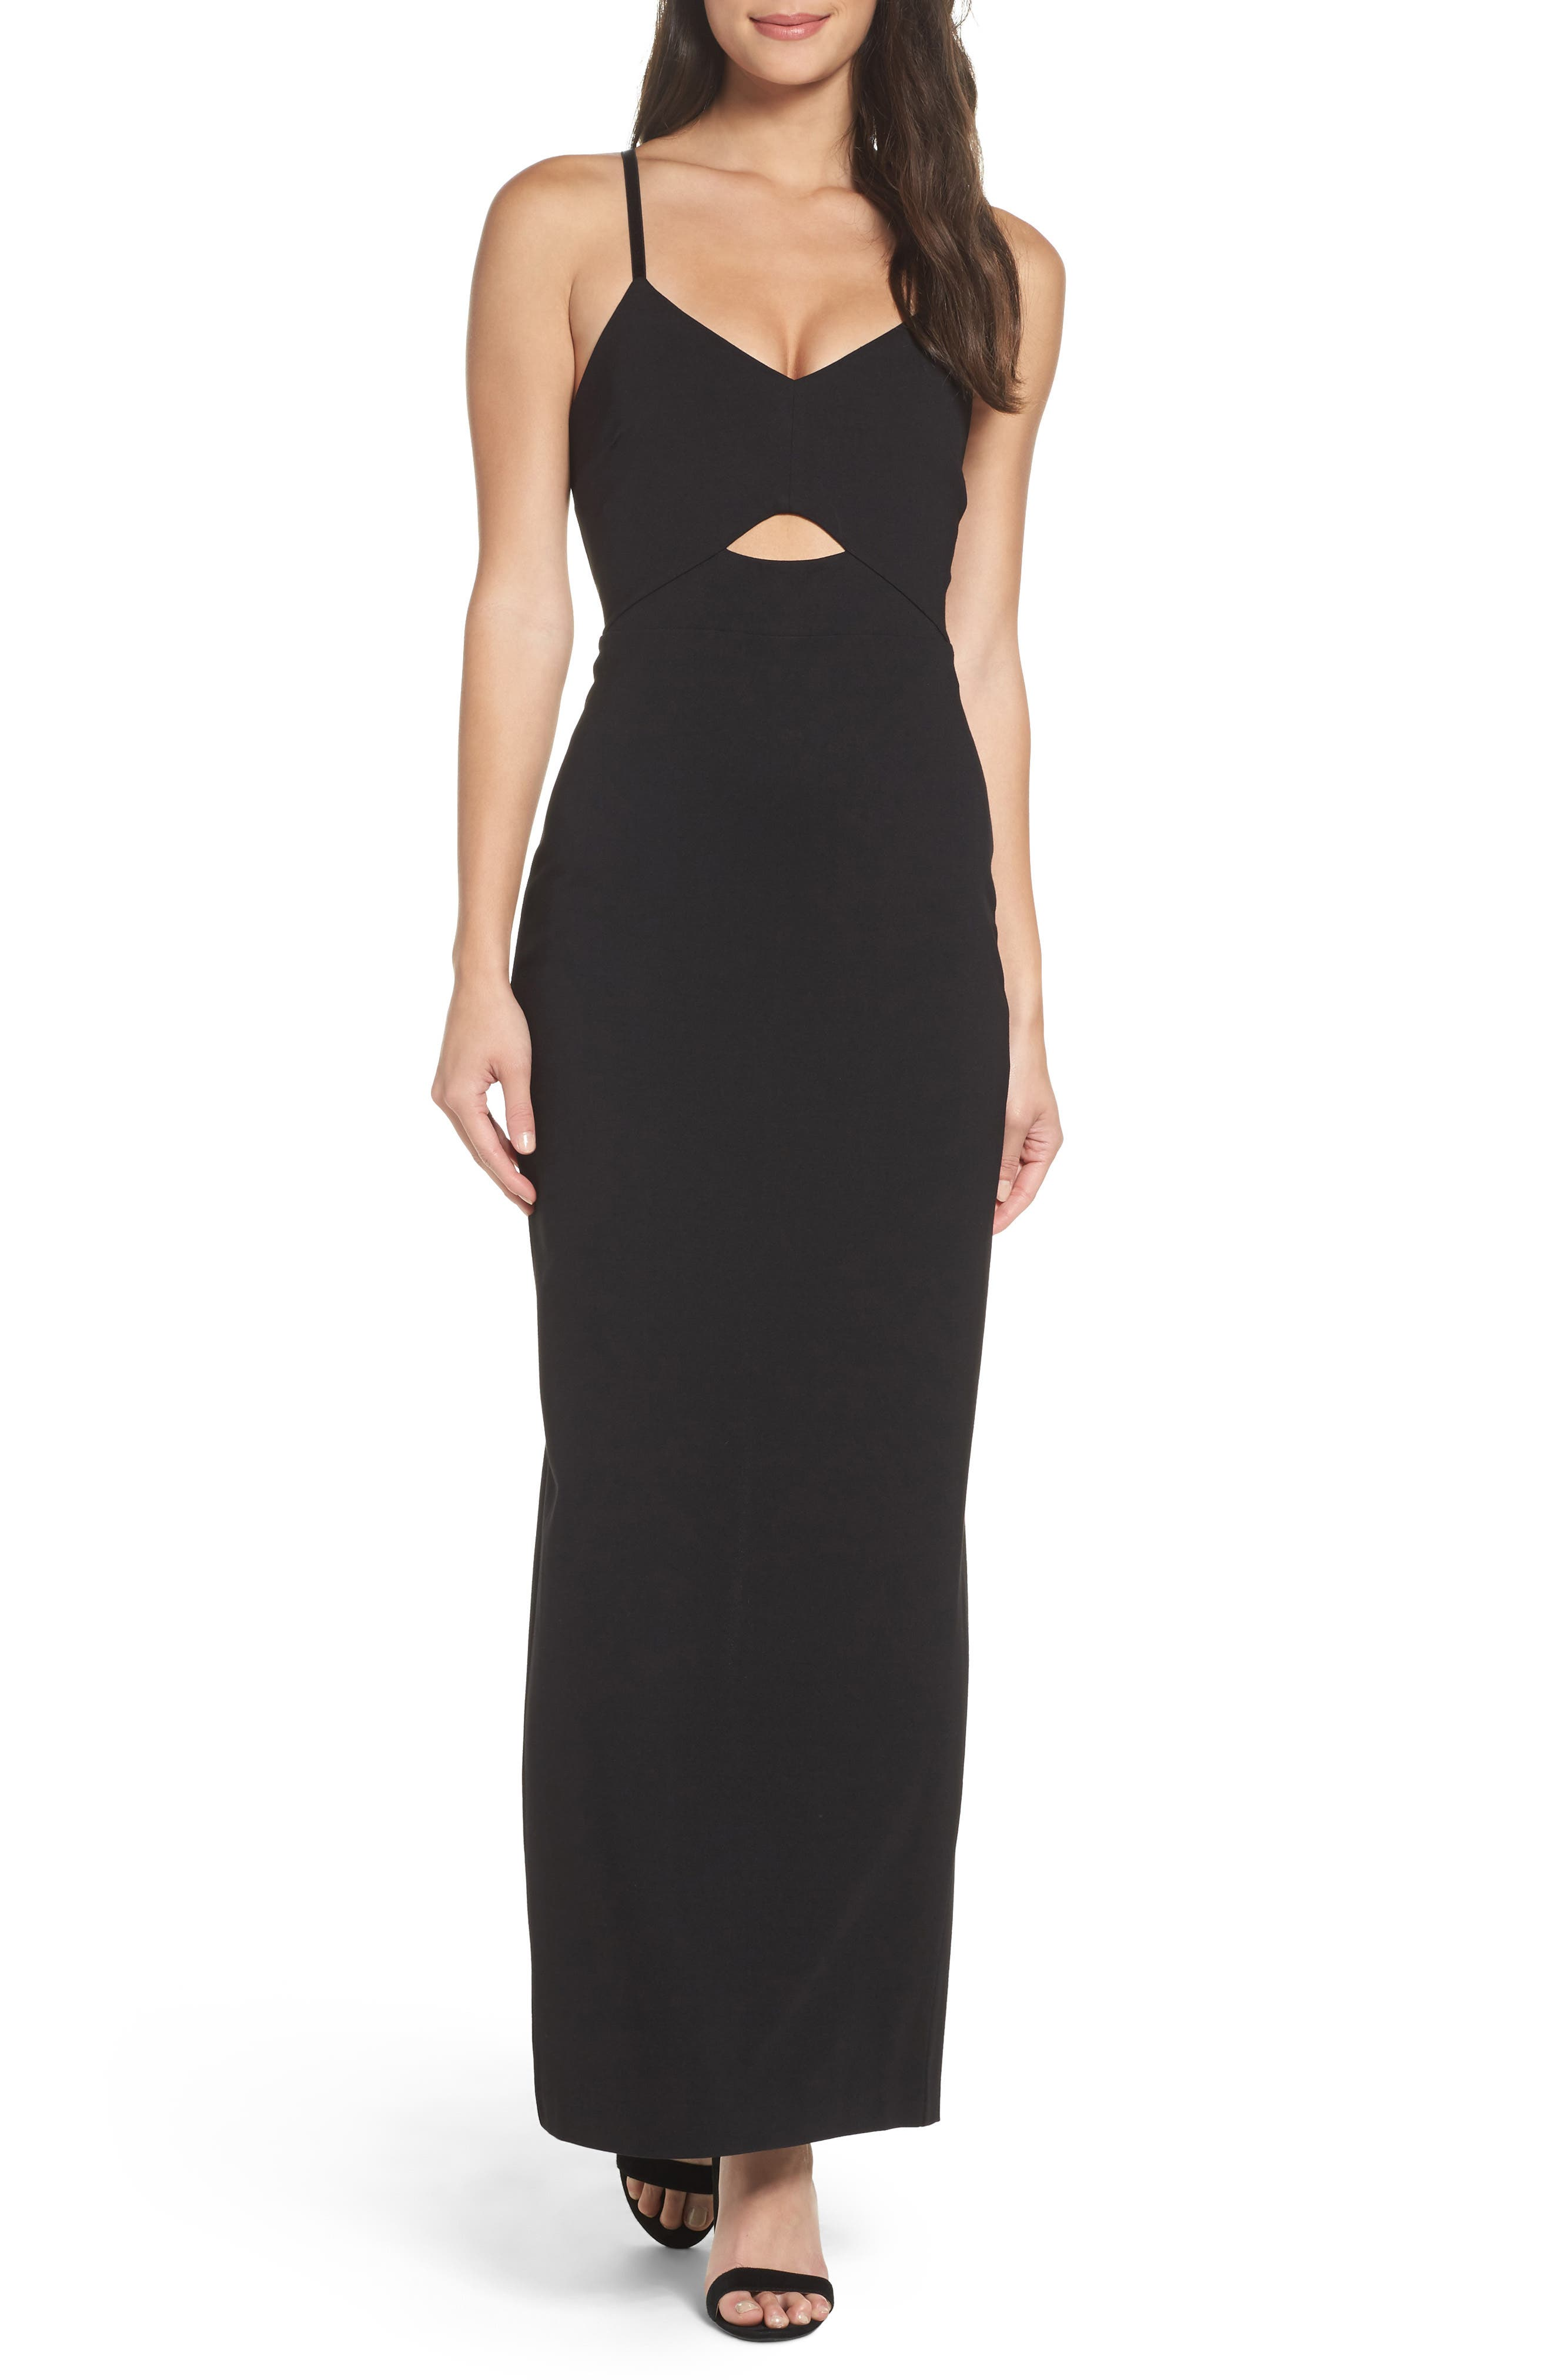 Step & Repeat Cutout Gown,                         Main,                         color, Black